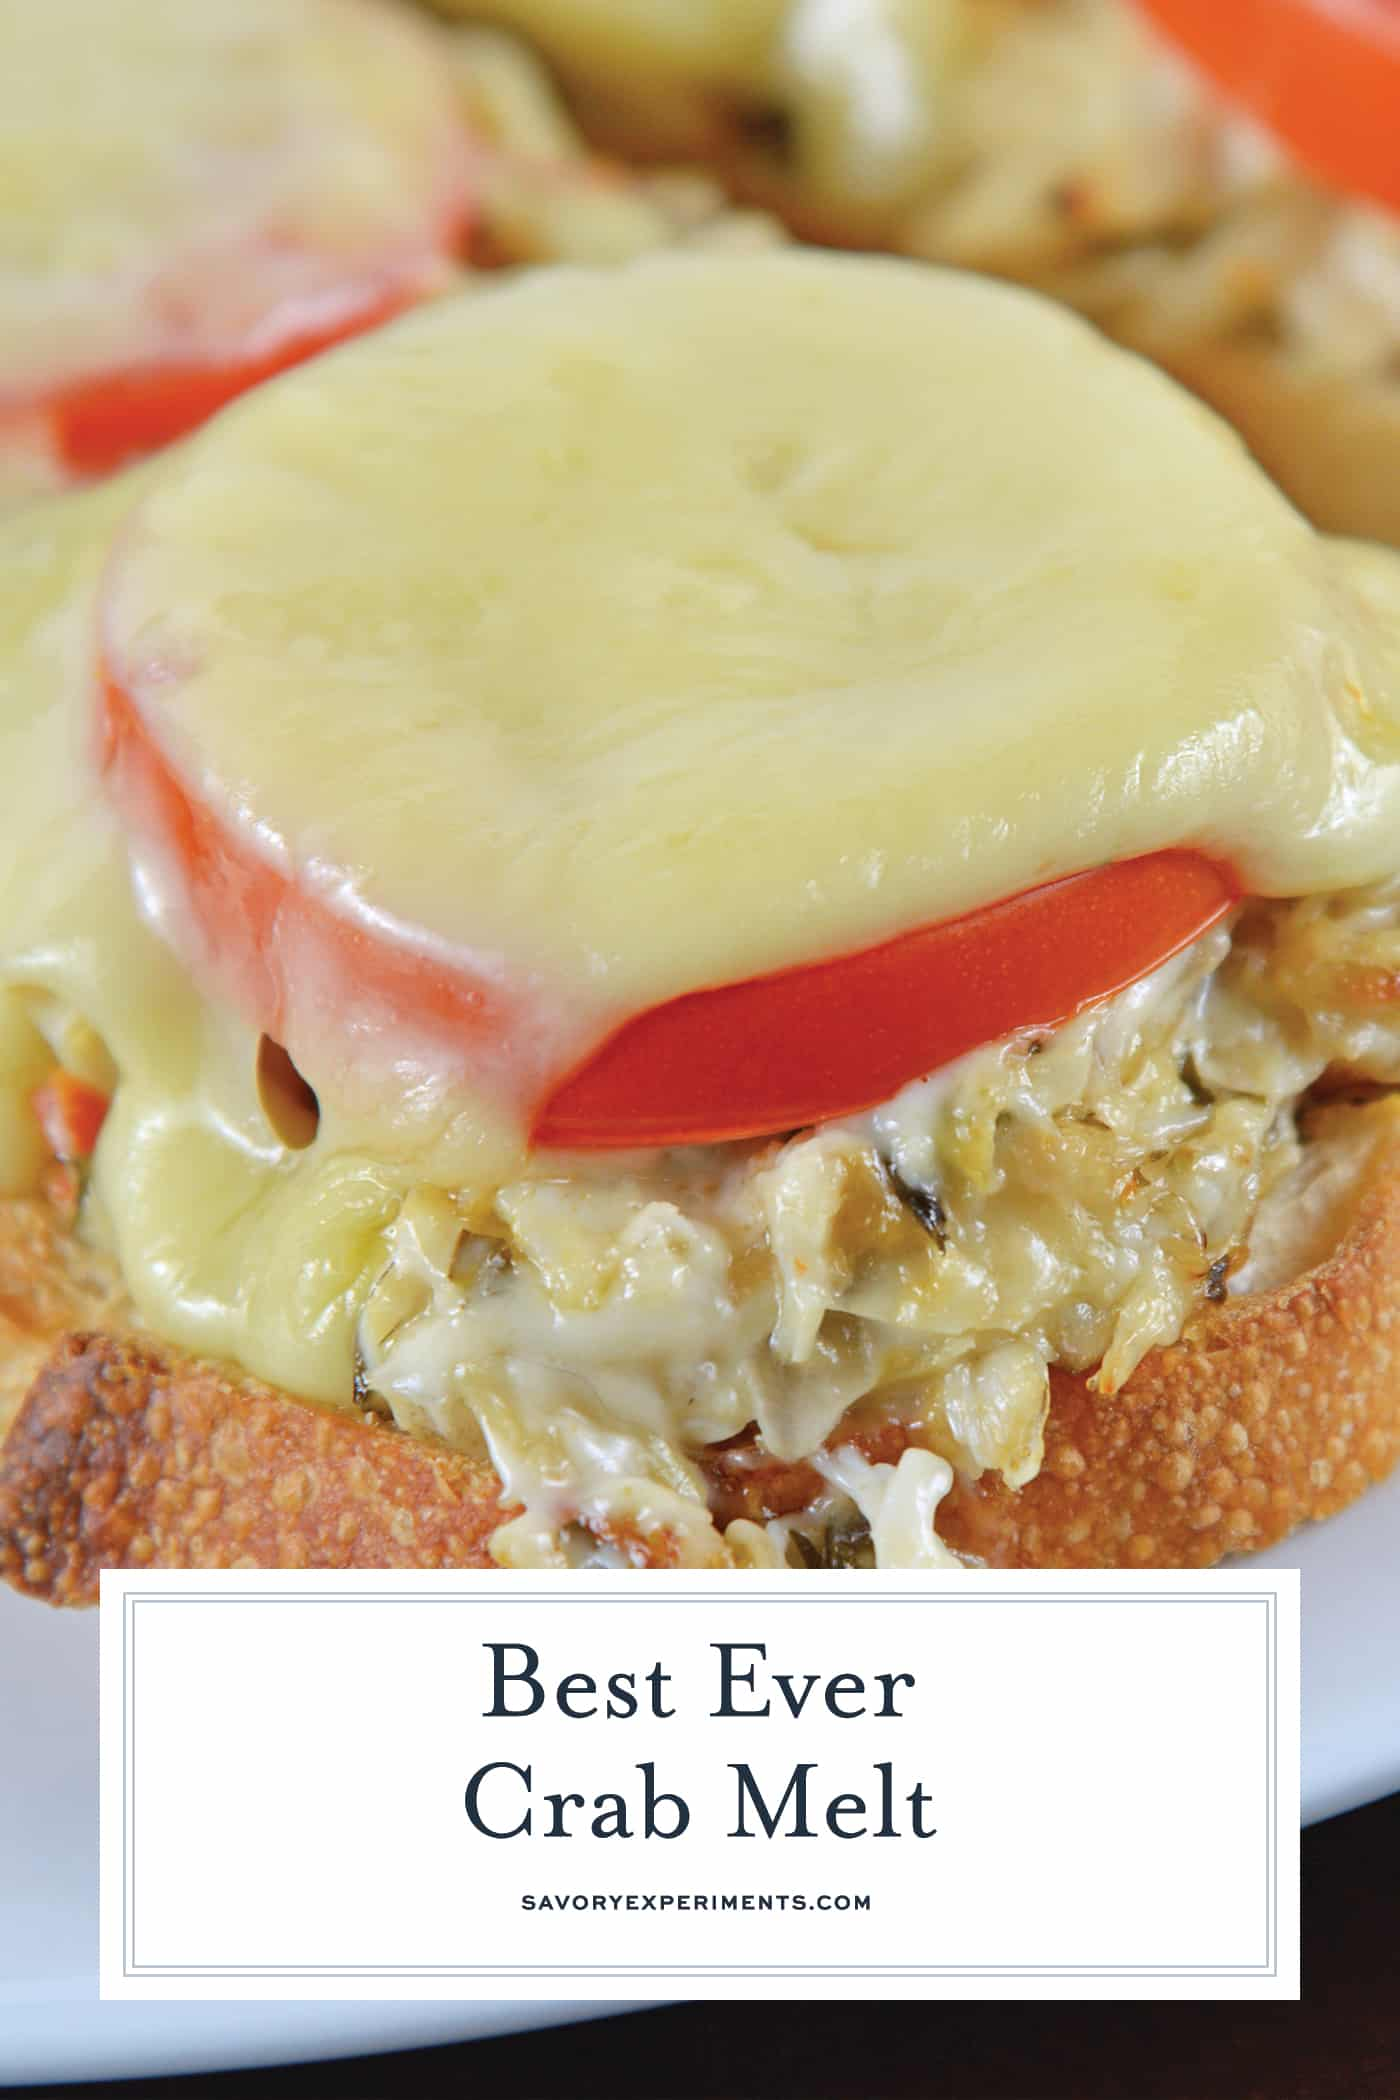 This Crab Melt will become your favorite open faced sandwich recipe! Deliciously cheesy and easy to make! #crabmelt #crabrecipes #openfacedsandwich www.savoryexperiments.com